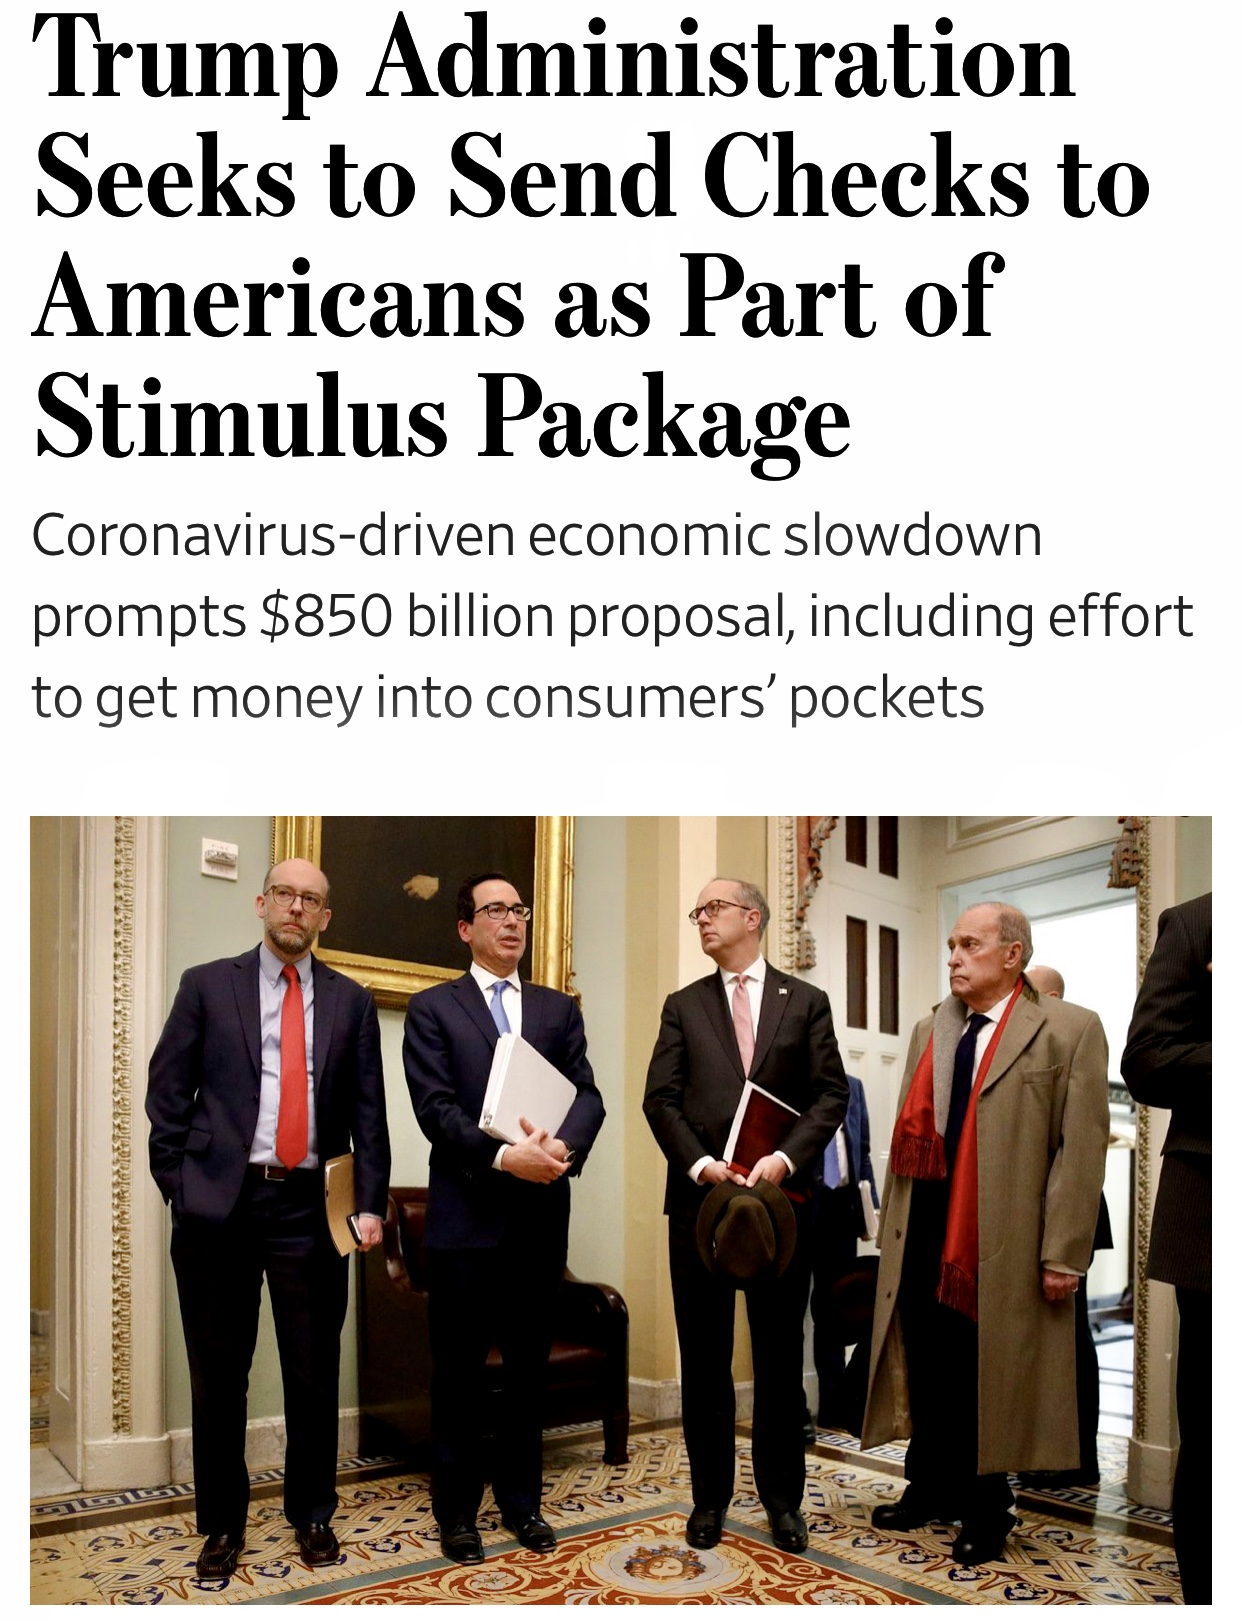 WH $850 Billion Stimulus Proposal to Send Checks to Americans